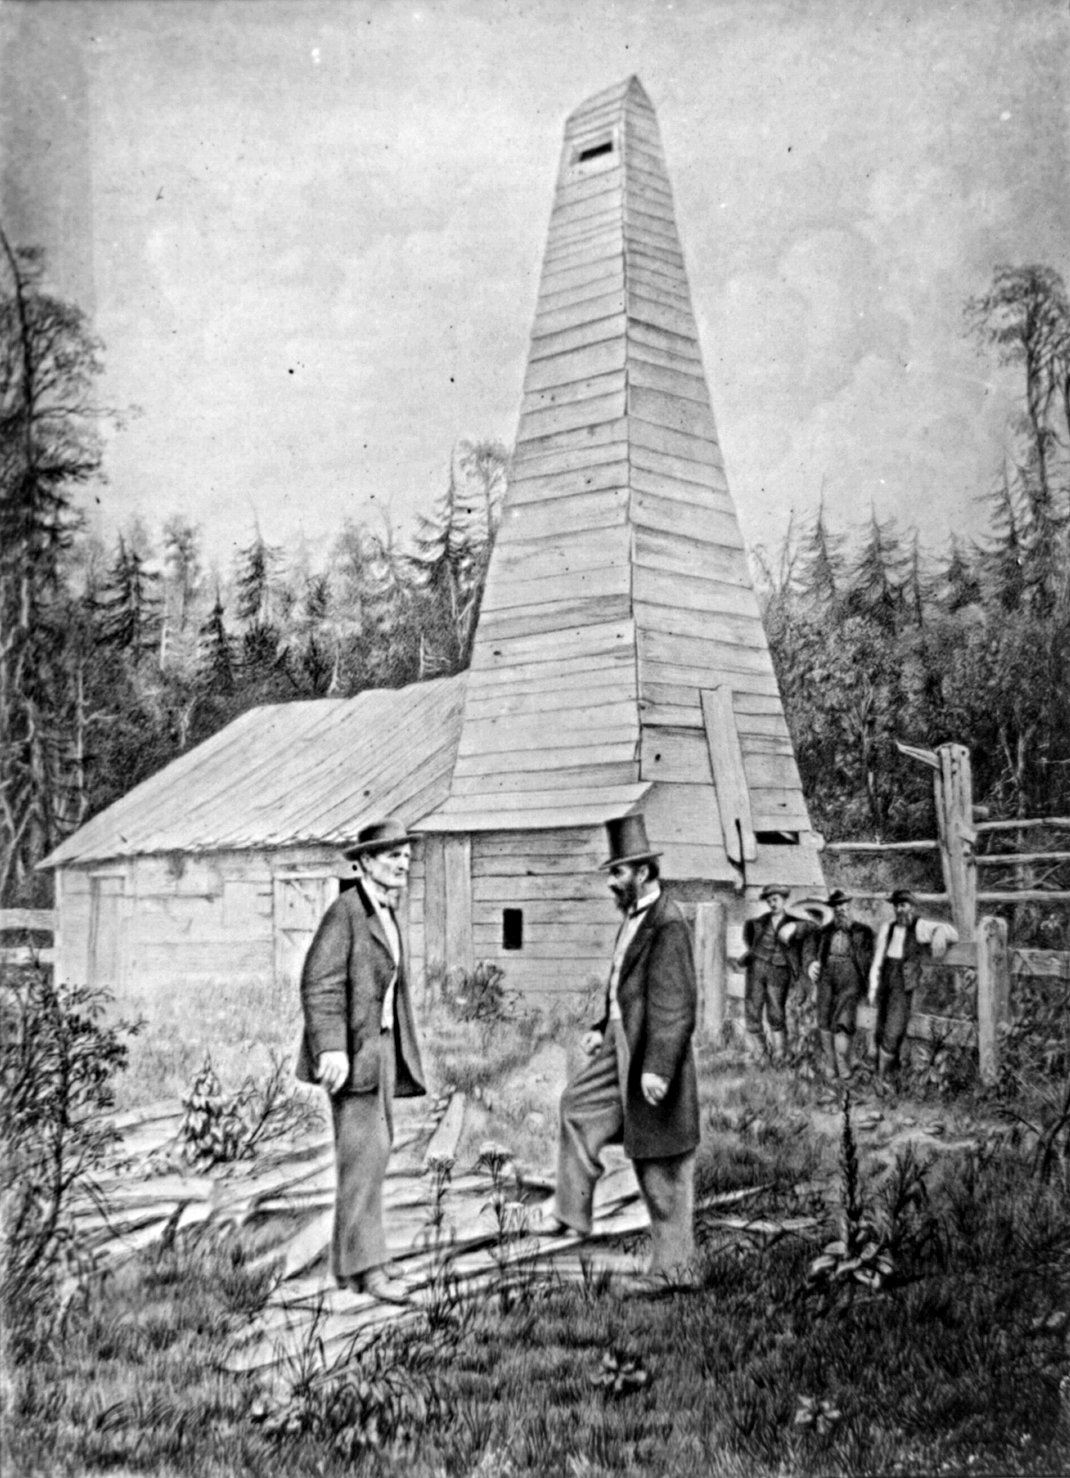 Retouched photograph showing Edwin L. Drake, to the right, and the Drake Well in the background, in Titusville, Pennsylvania, where the first commercial well was drilled in 1859 to find oil